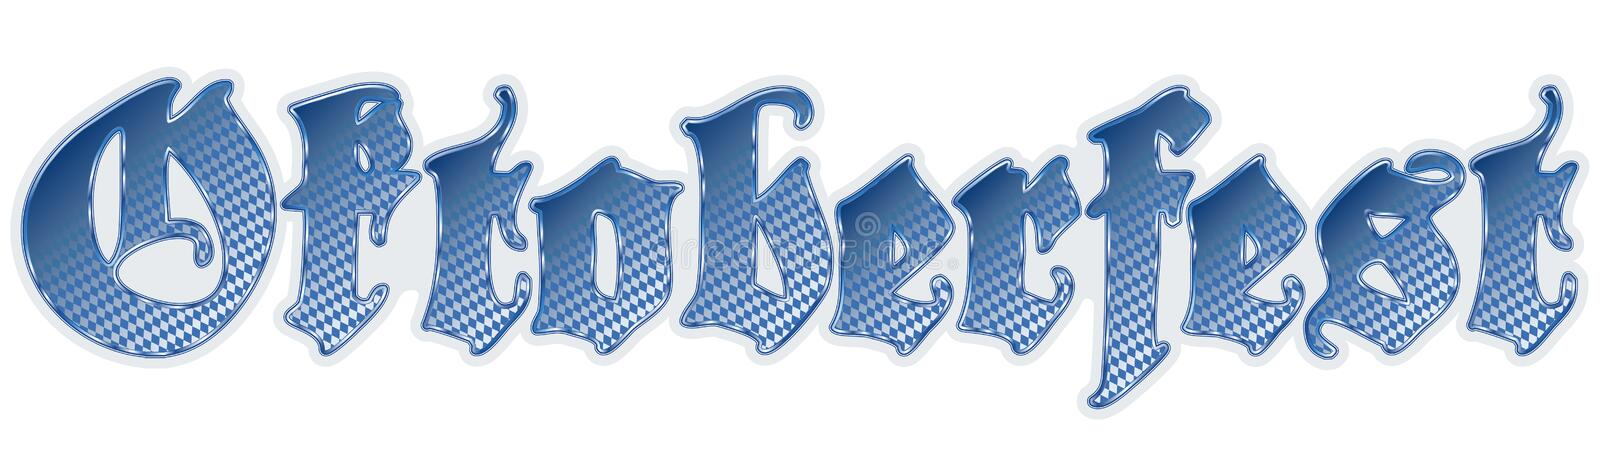 letters german Oktoberfest vector illustration